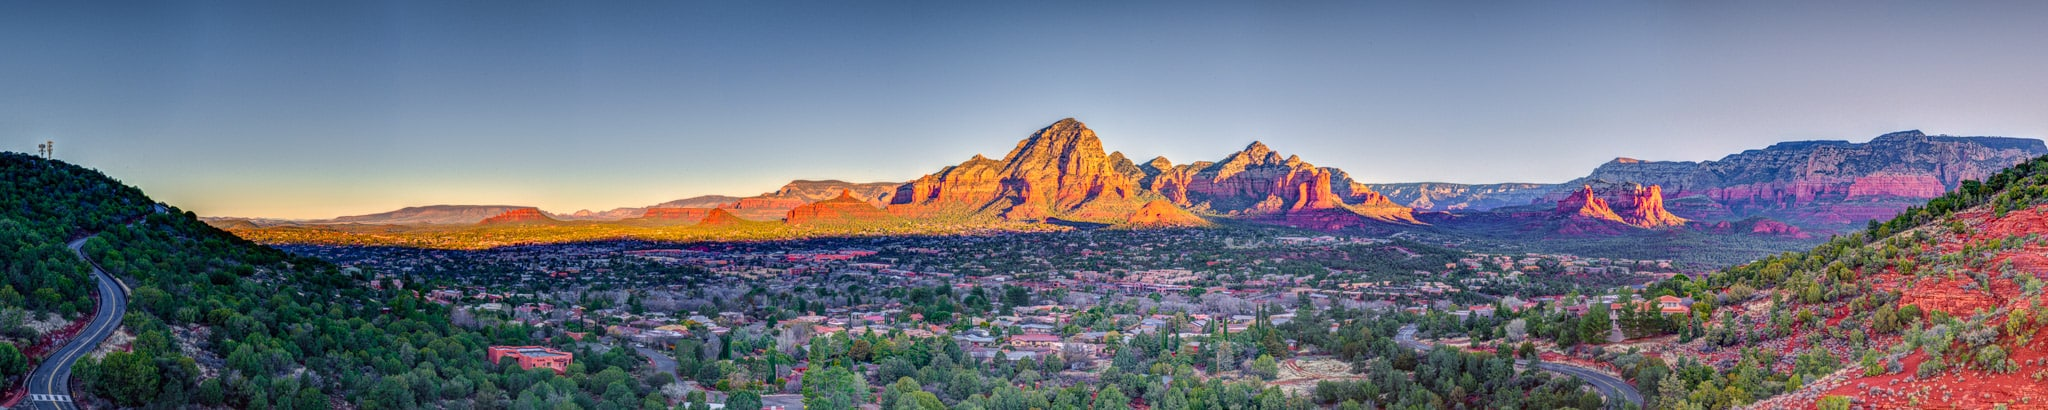 An early morning panorama of Sedona taken from Airport Road in Sedona, Arizona.